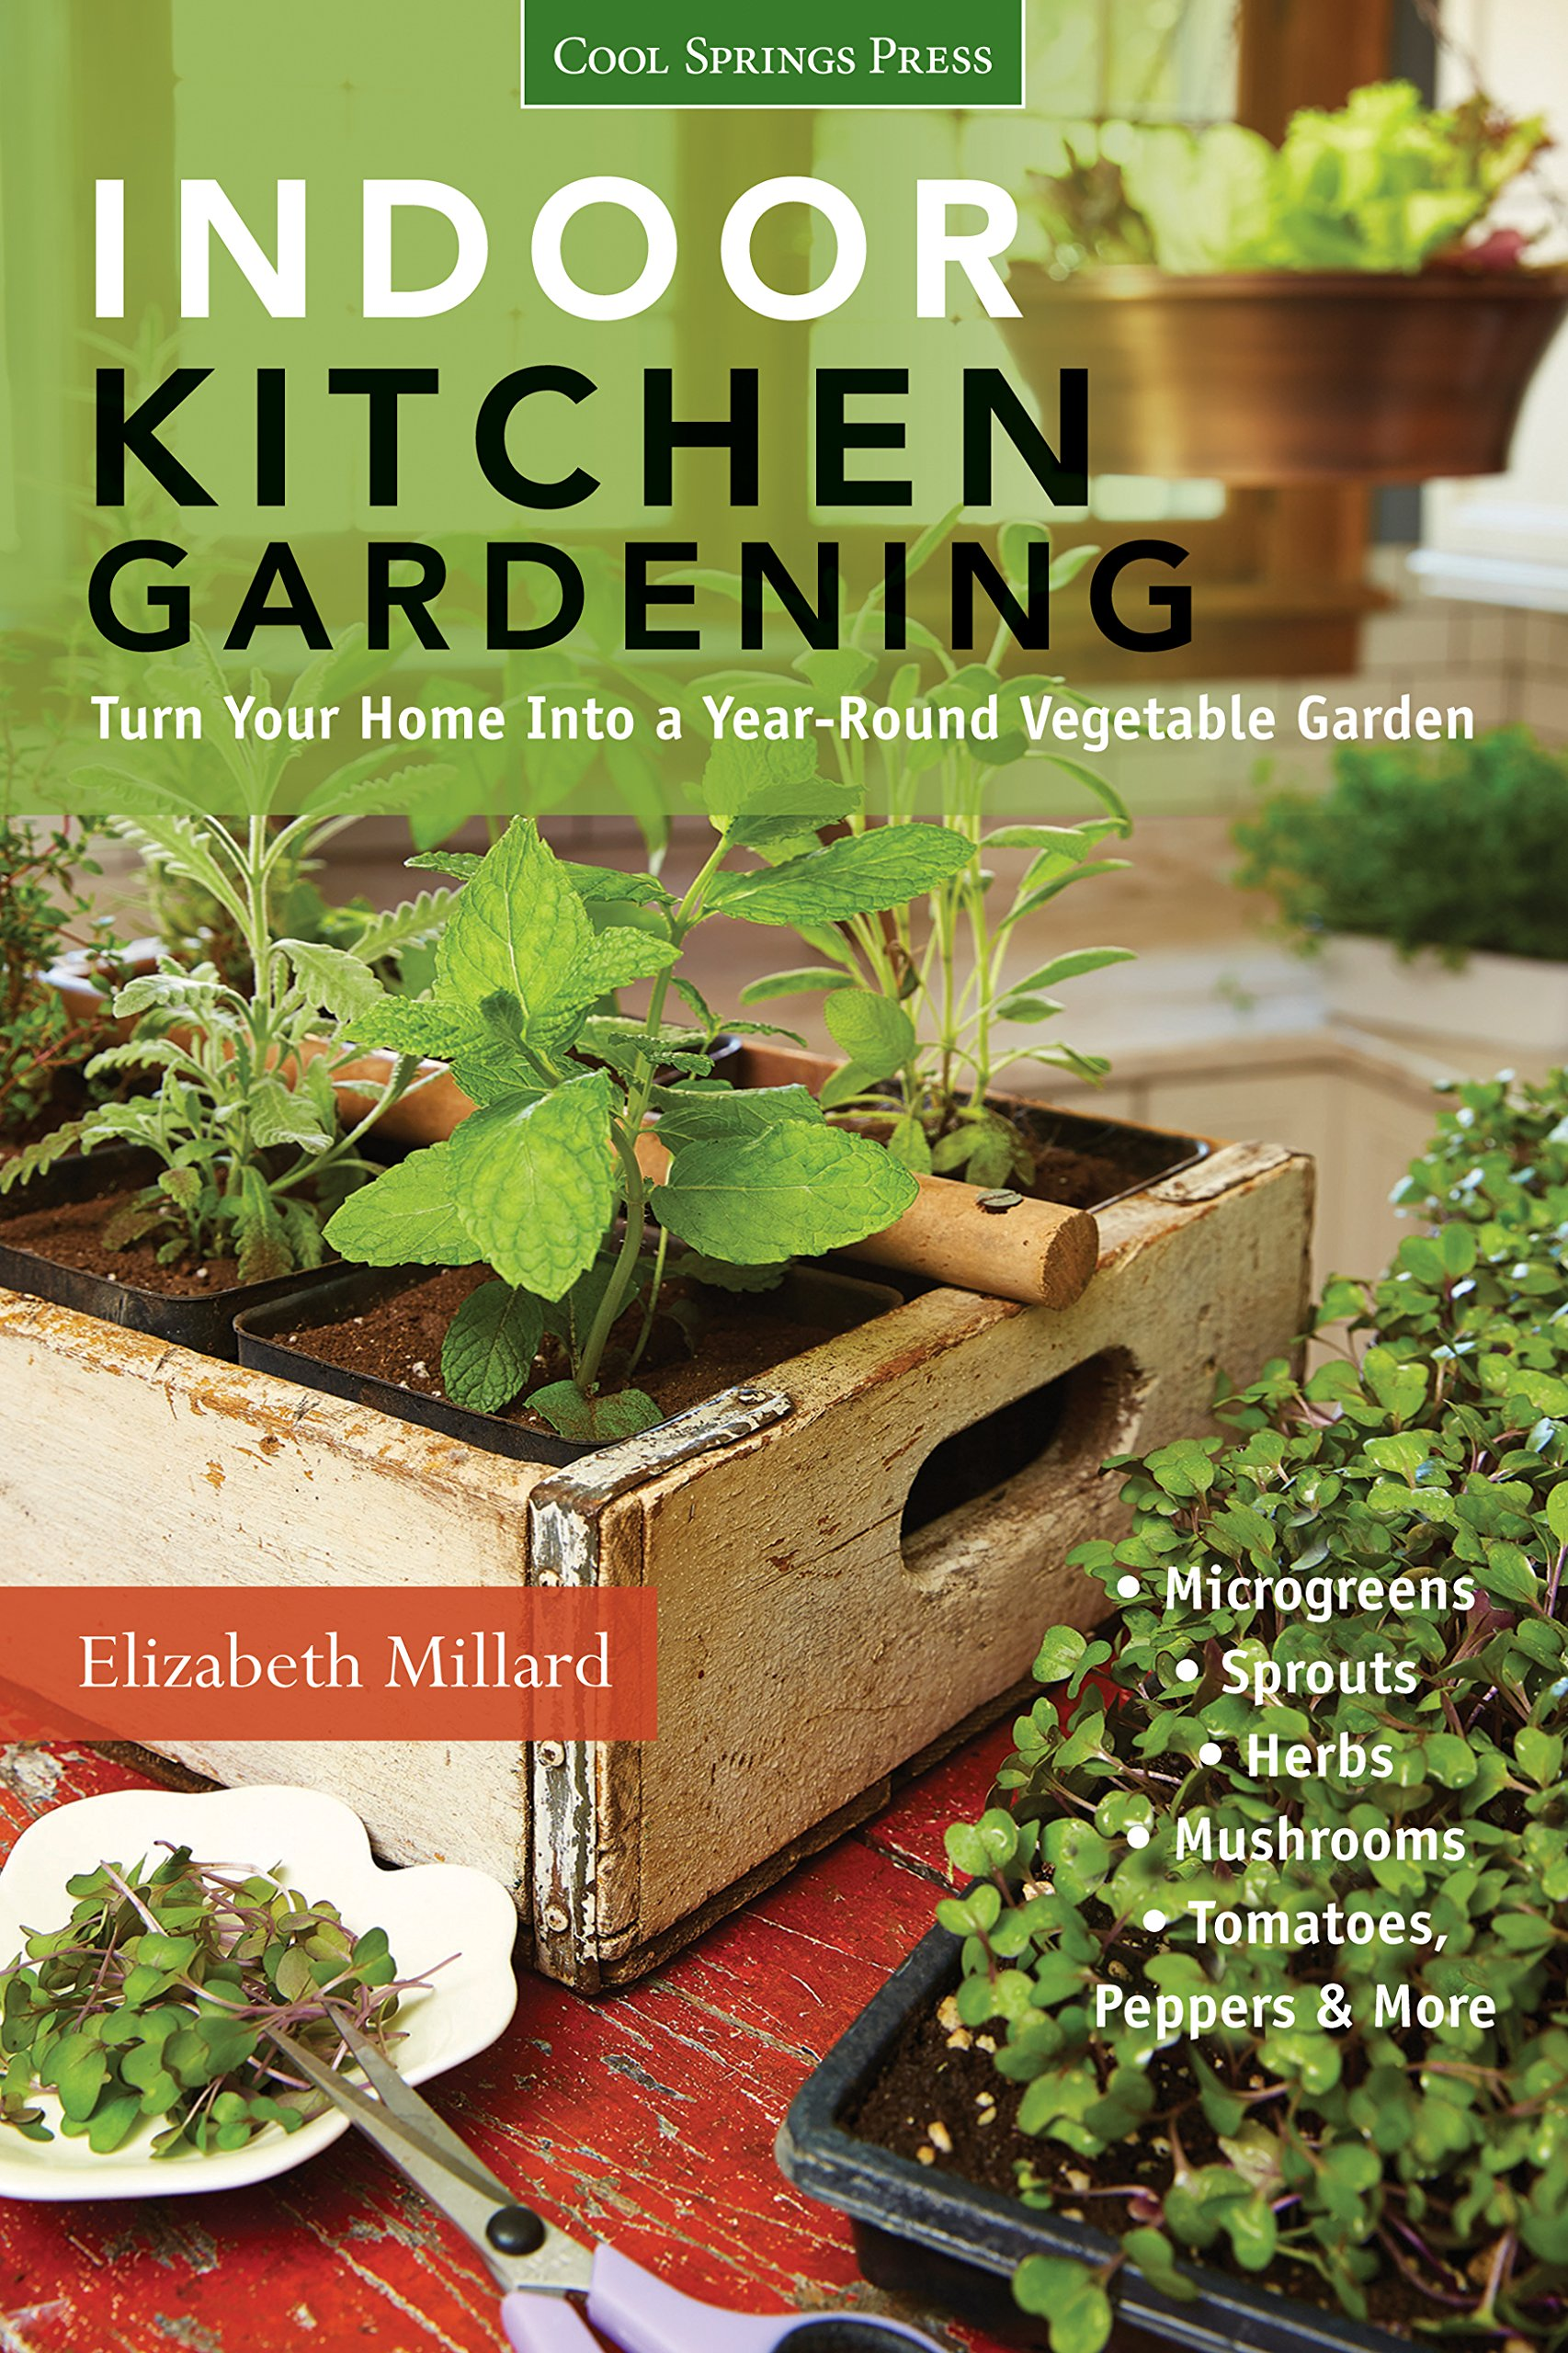 Buy Indoor Kitchen Gardening: Turn Your Home Into a Year-round Vegetable  Garden - Microgreens - Sprouts - Herbs - Mushrooms - Tomatoes, Peppers &  More Book ...